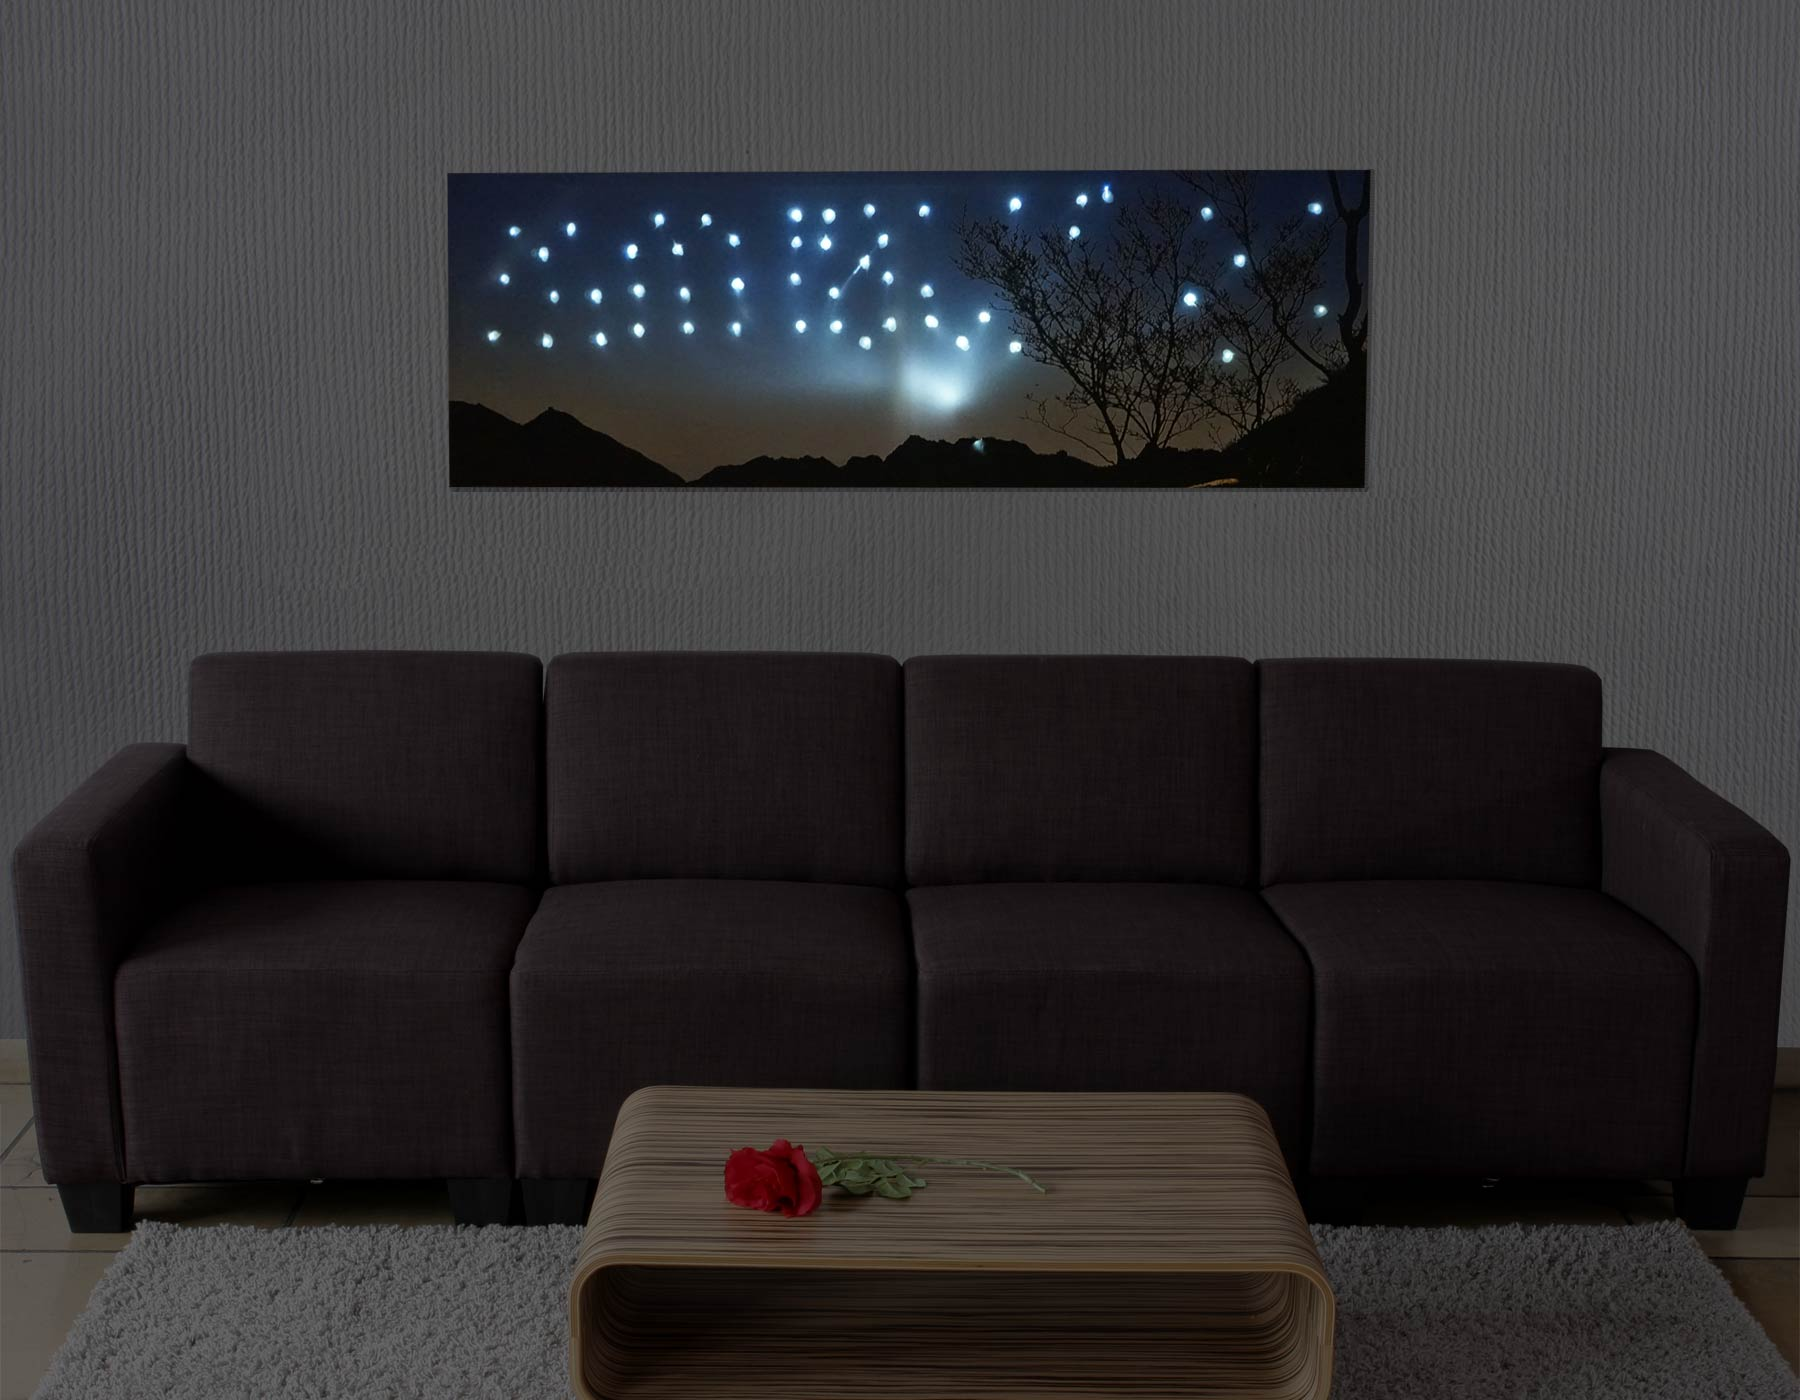 led bild leinwandbild leuchtbild wandbild 100x35cm sonnenuntergang. Black Bedroom Furniture Sets. Home Design Ideas